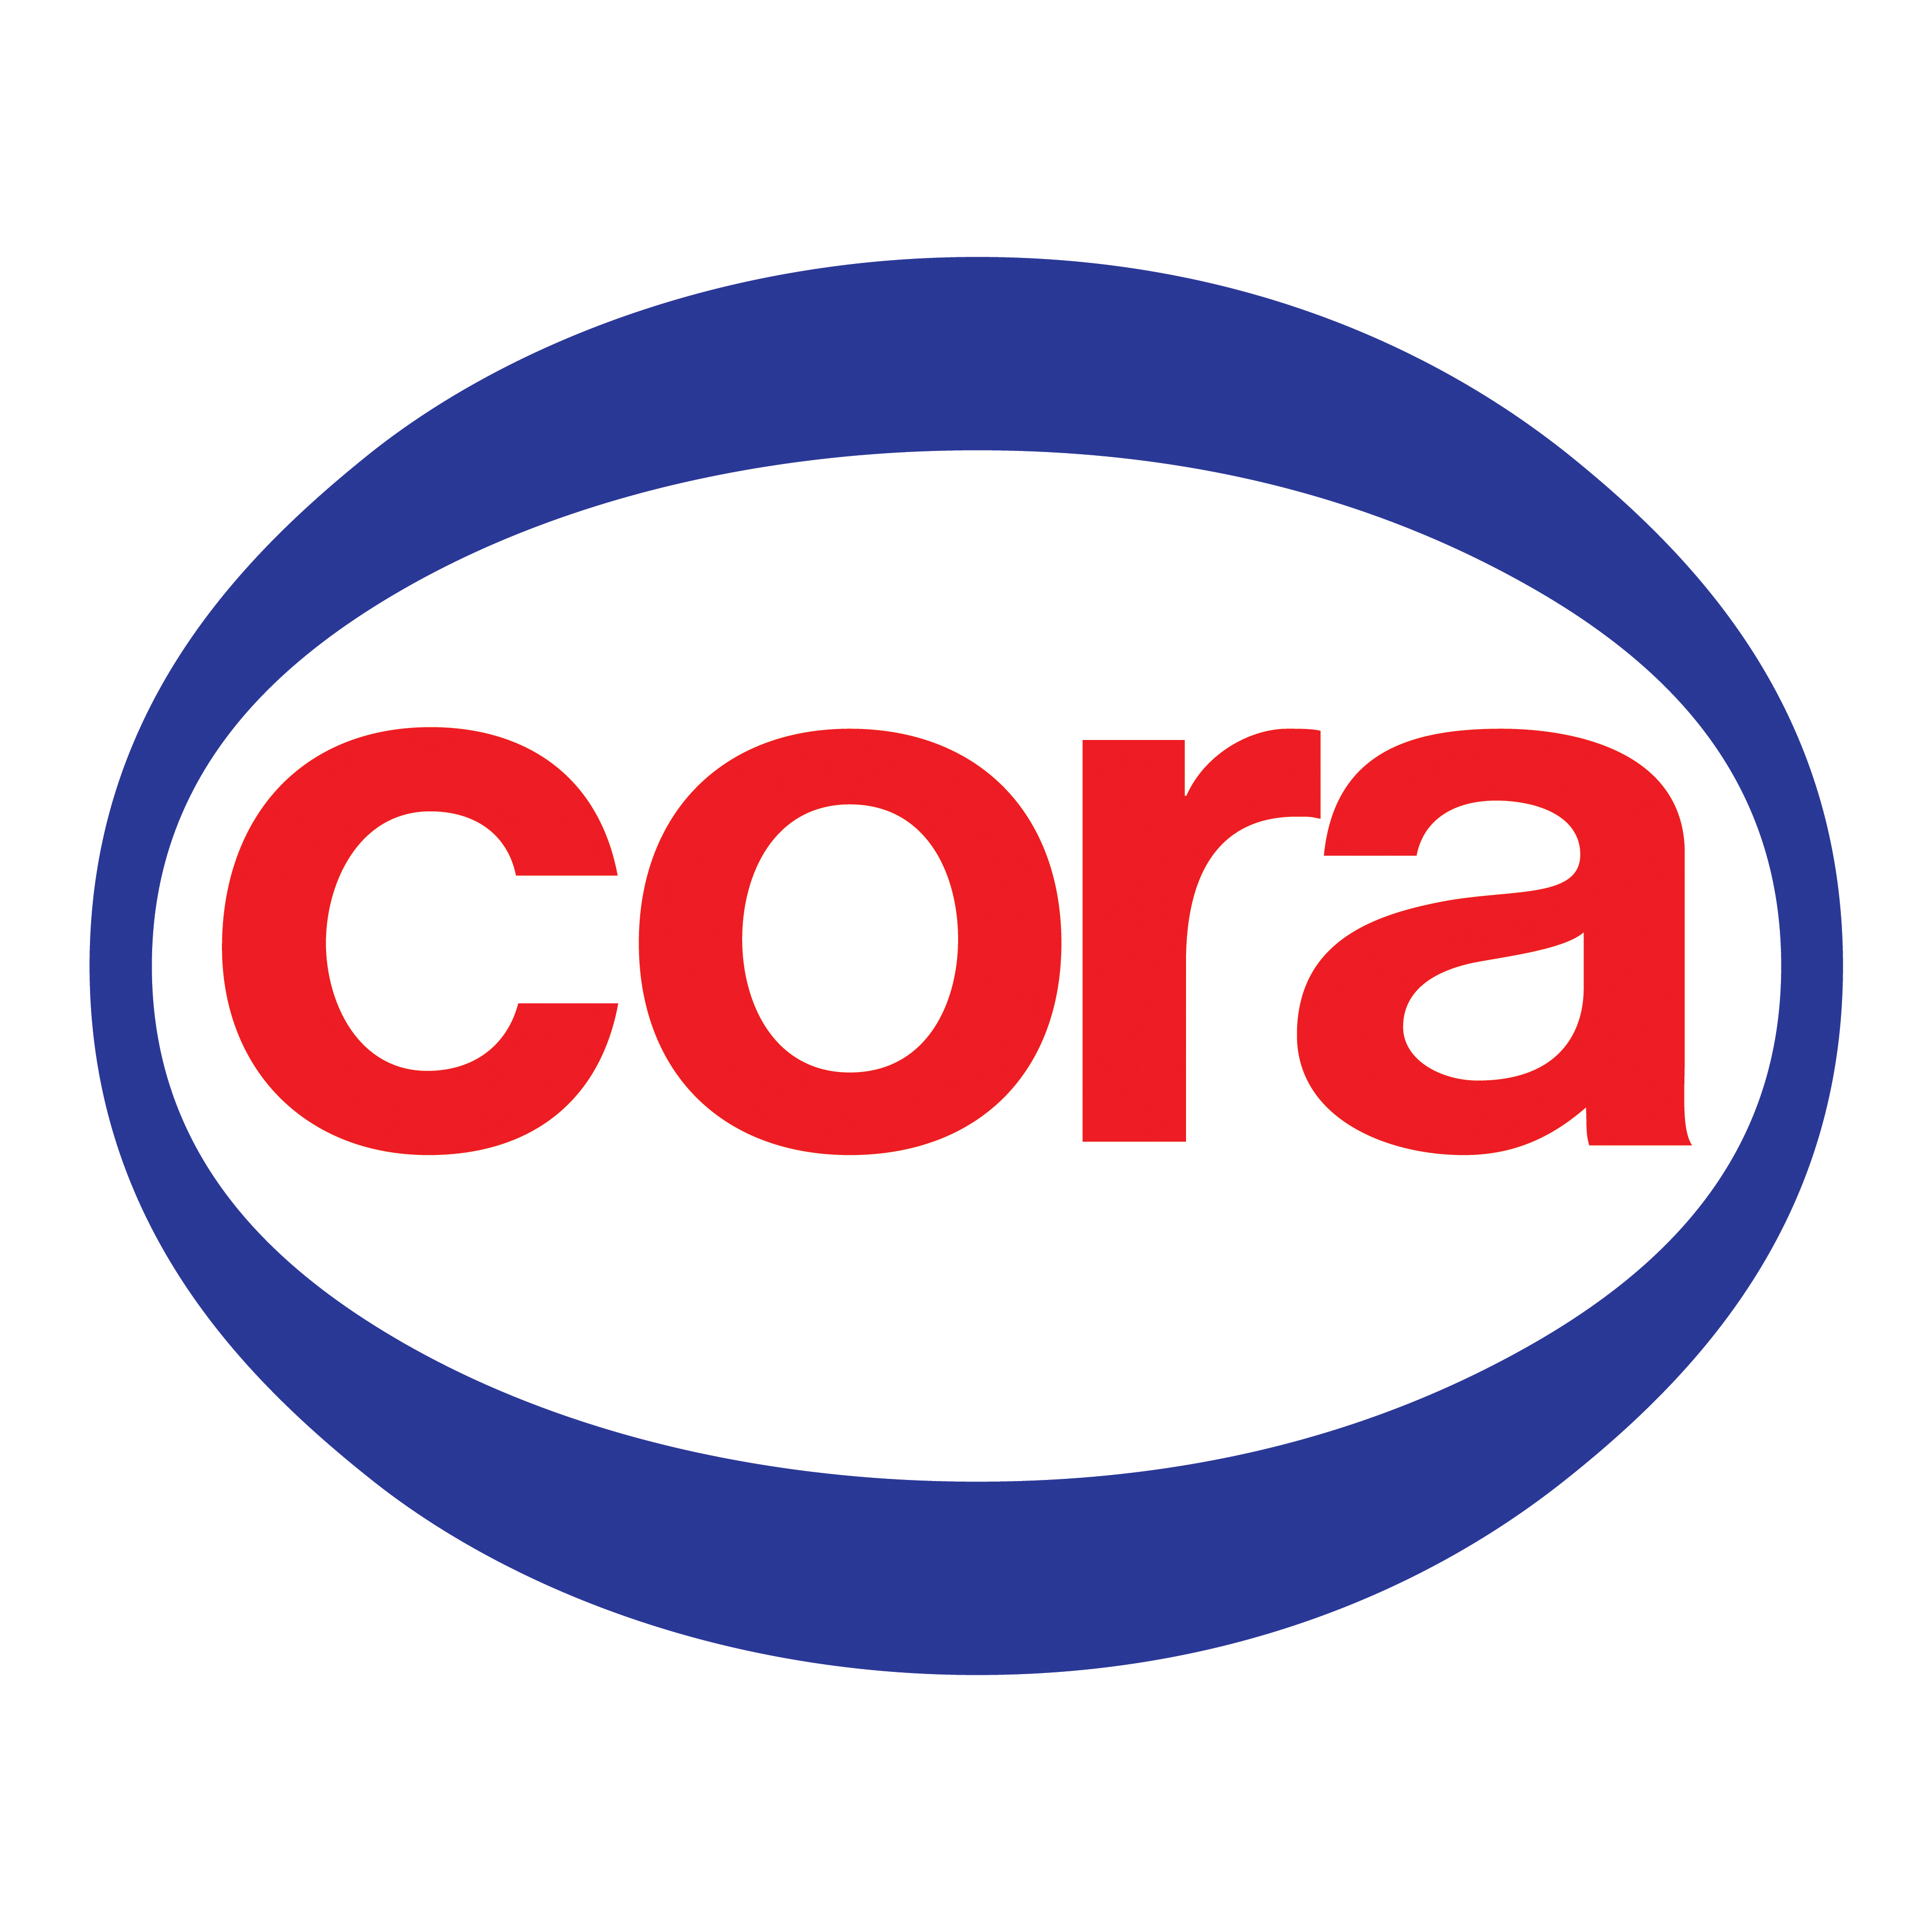 External link to the Cora website